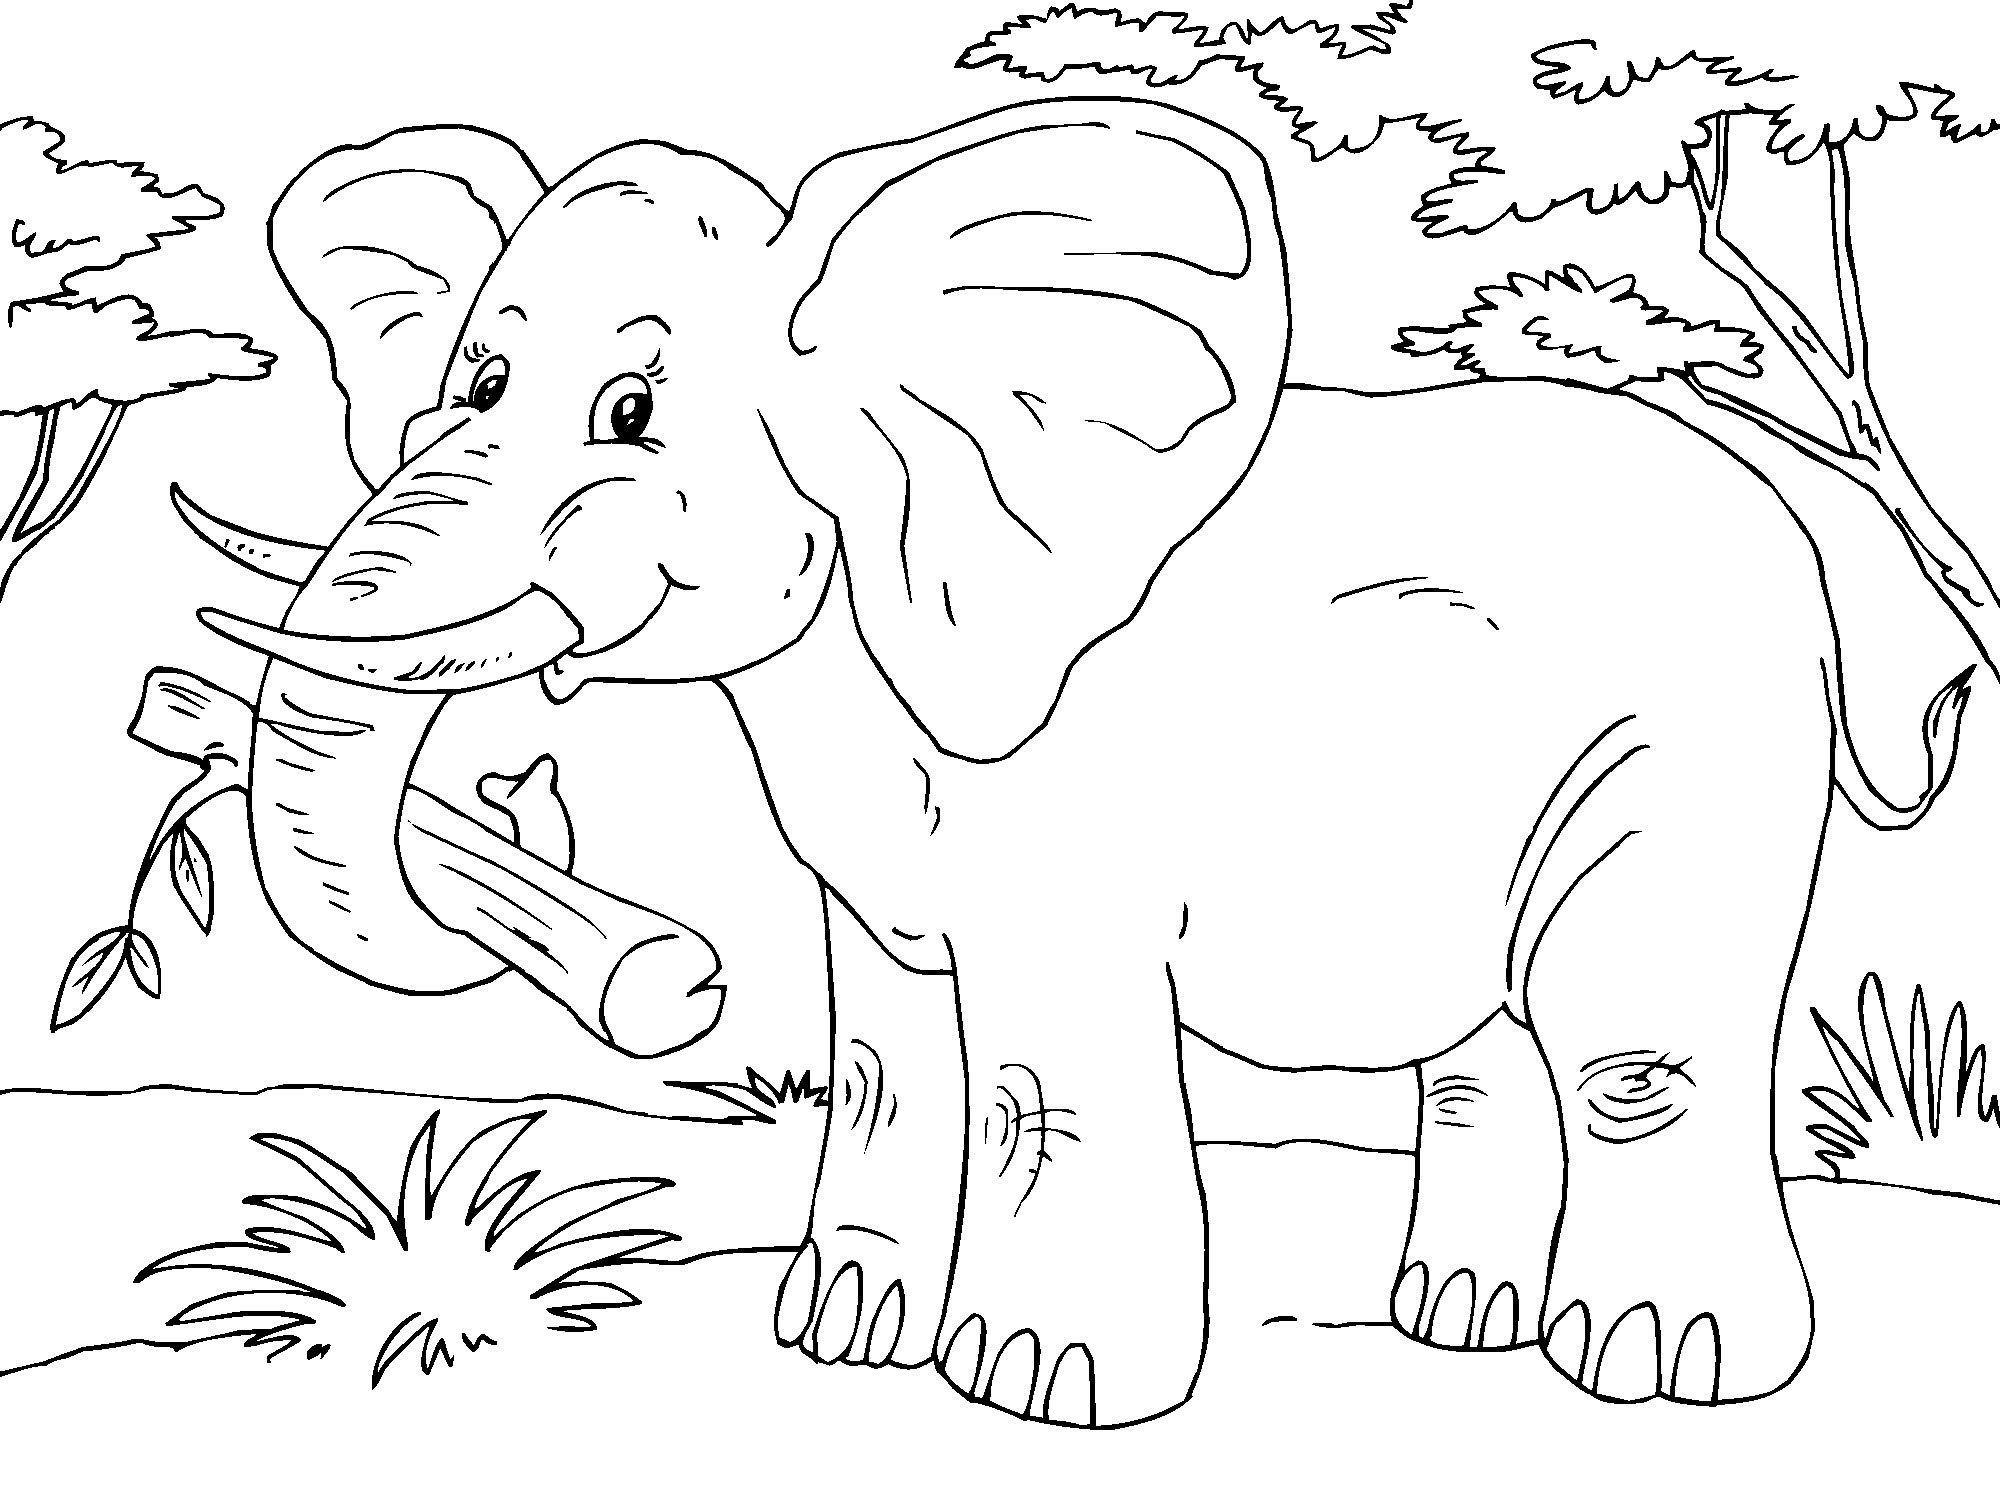 Kleurplaat Elephant Coloring Page Elephant Drawing Animal Coloring Pages